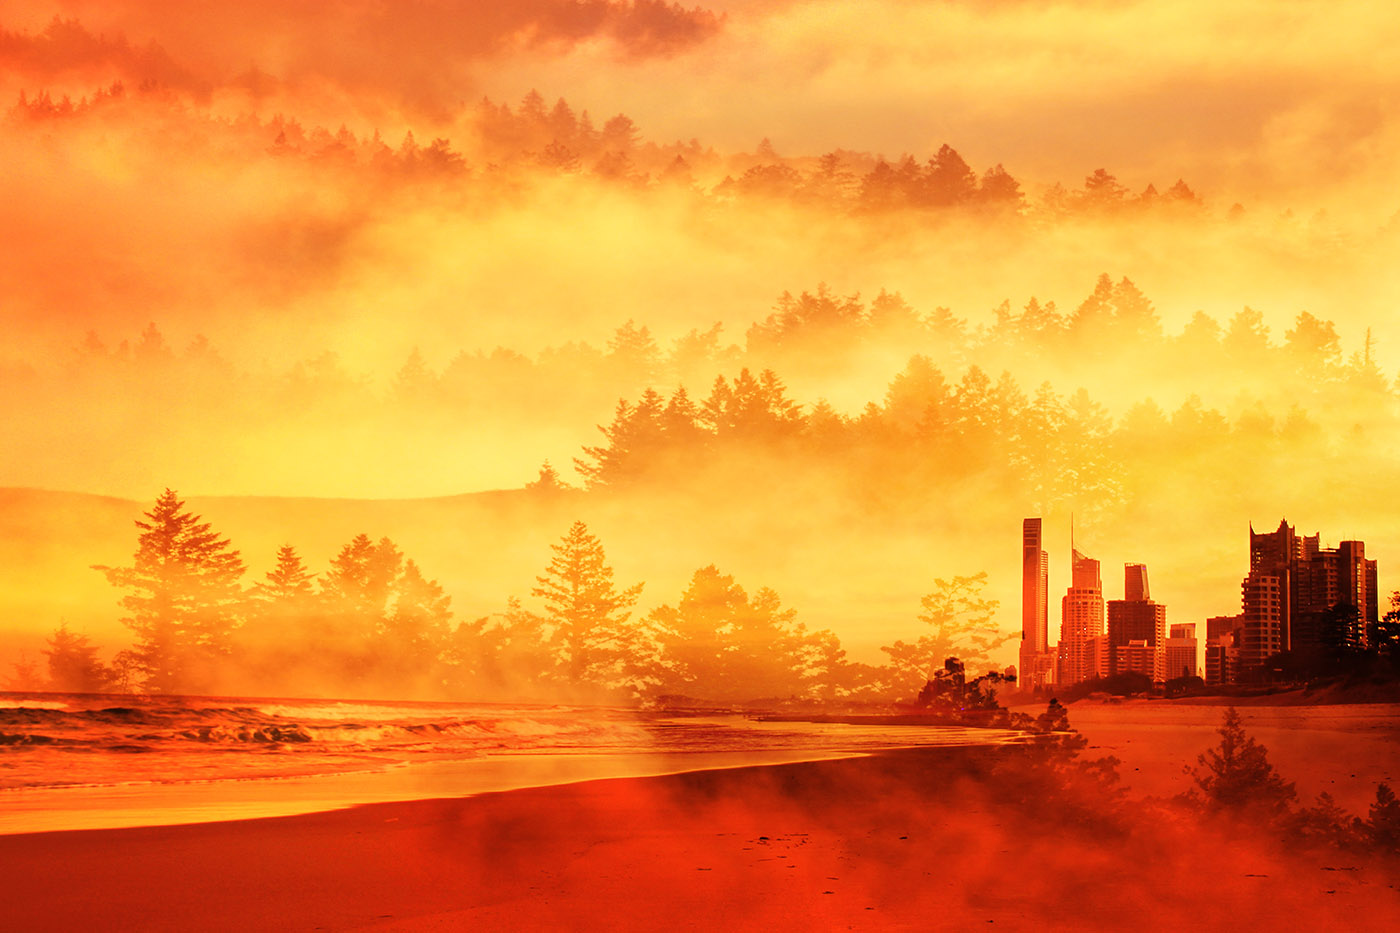 Colorful Apocalyptic Imagery 05 - Stock Photography